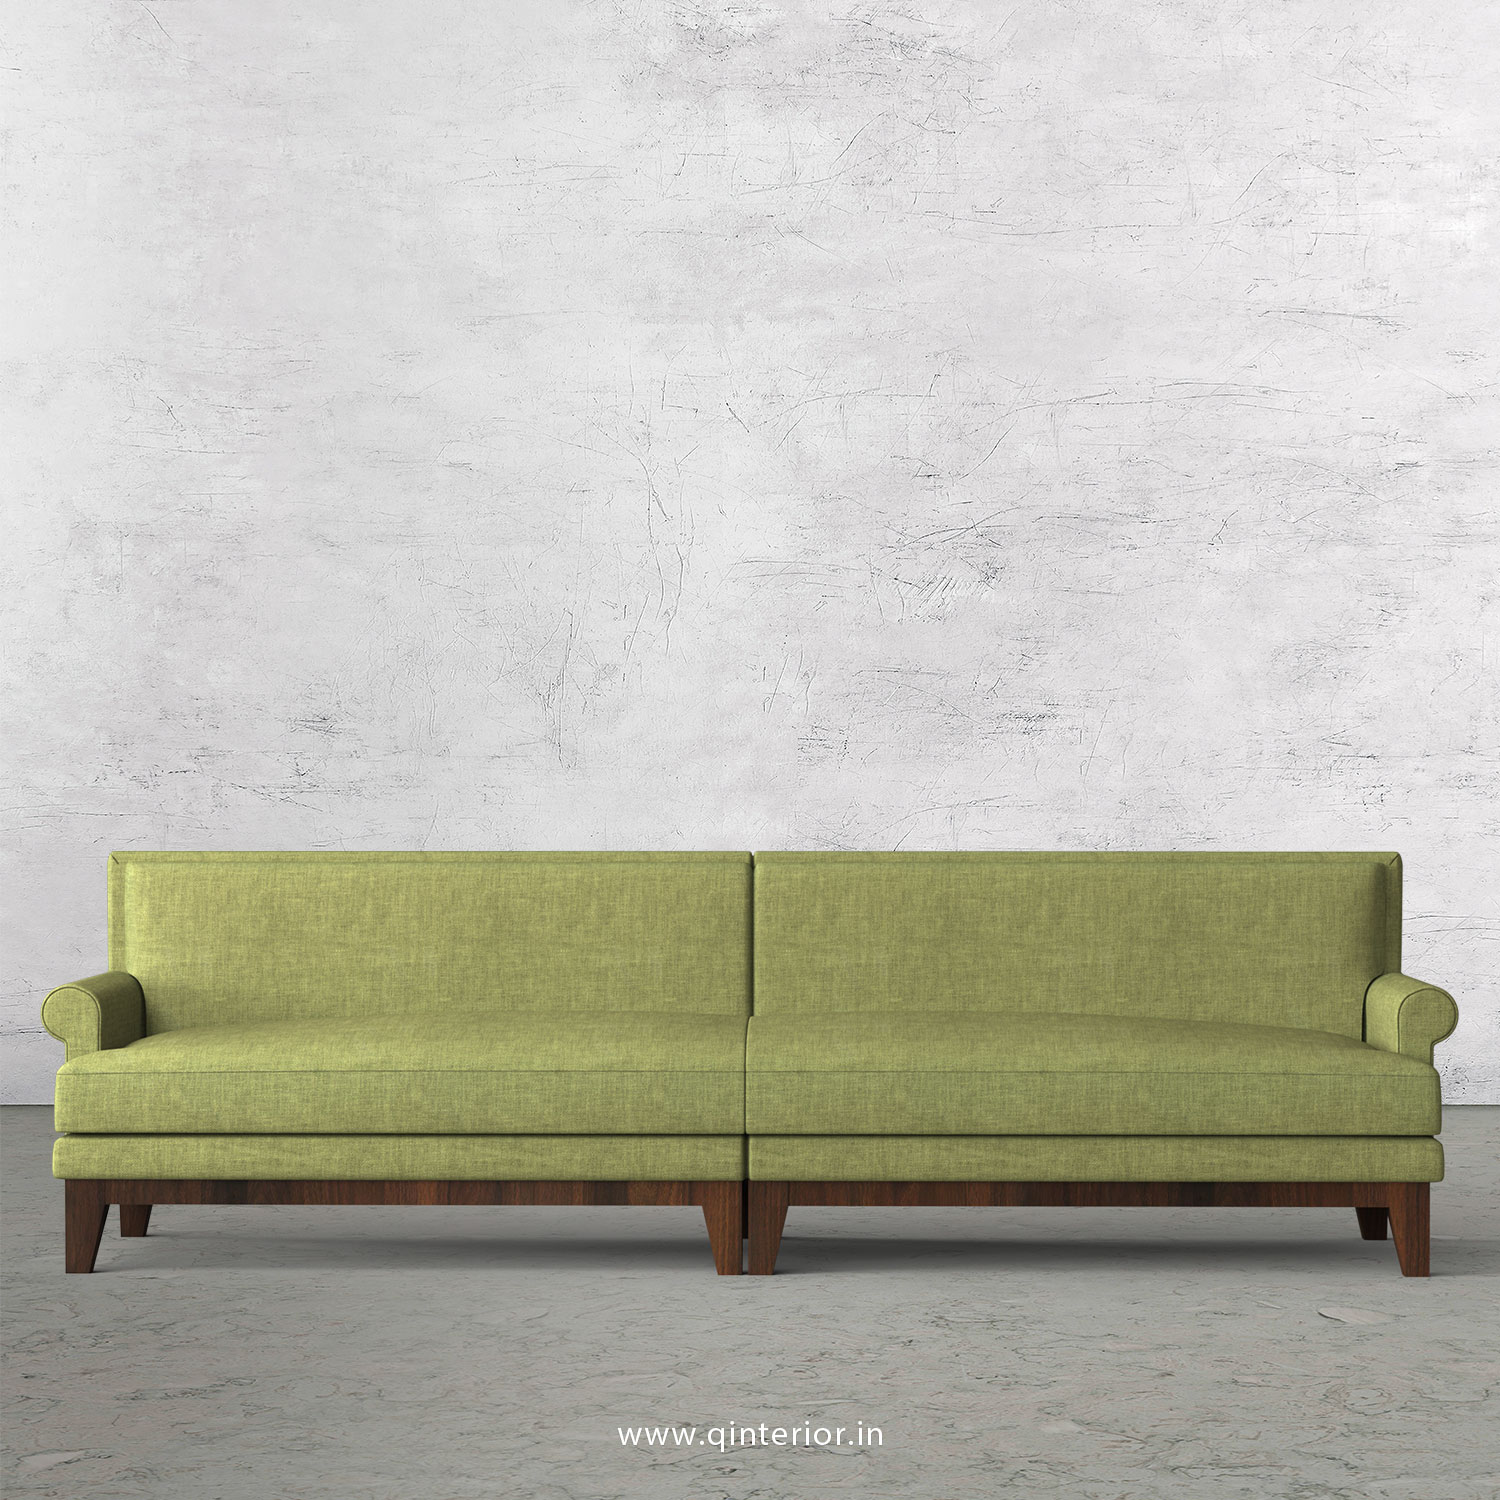 Aviana 4 Seater Sofa in Cotton Plain - SFA001 CP18